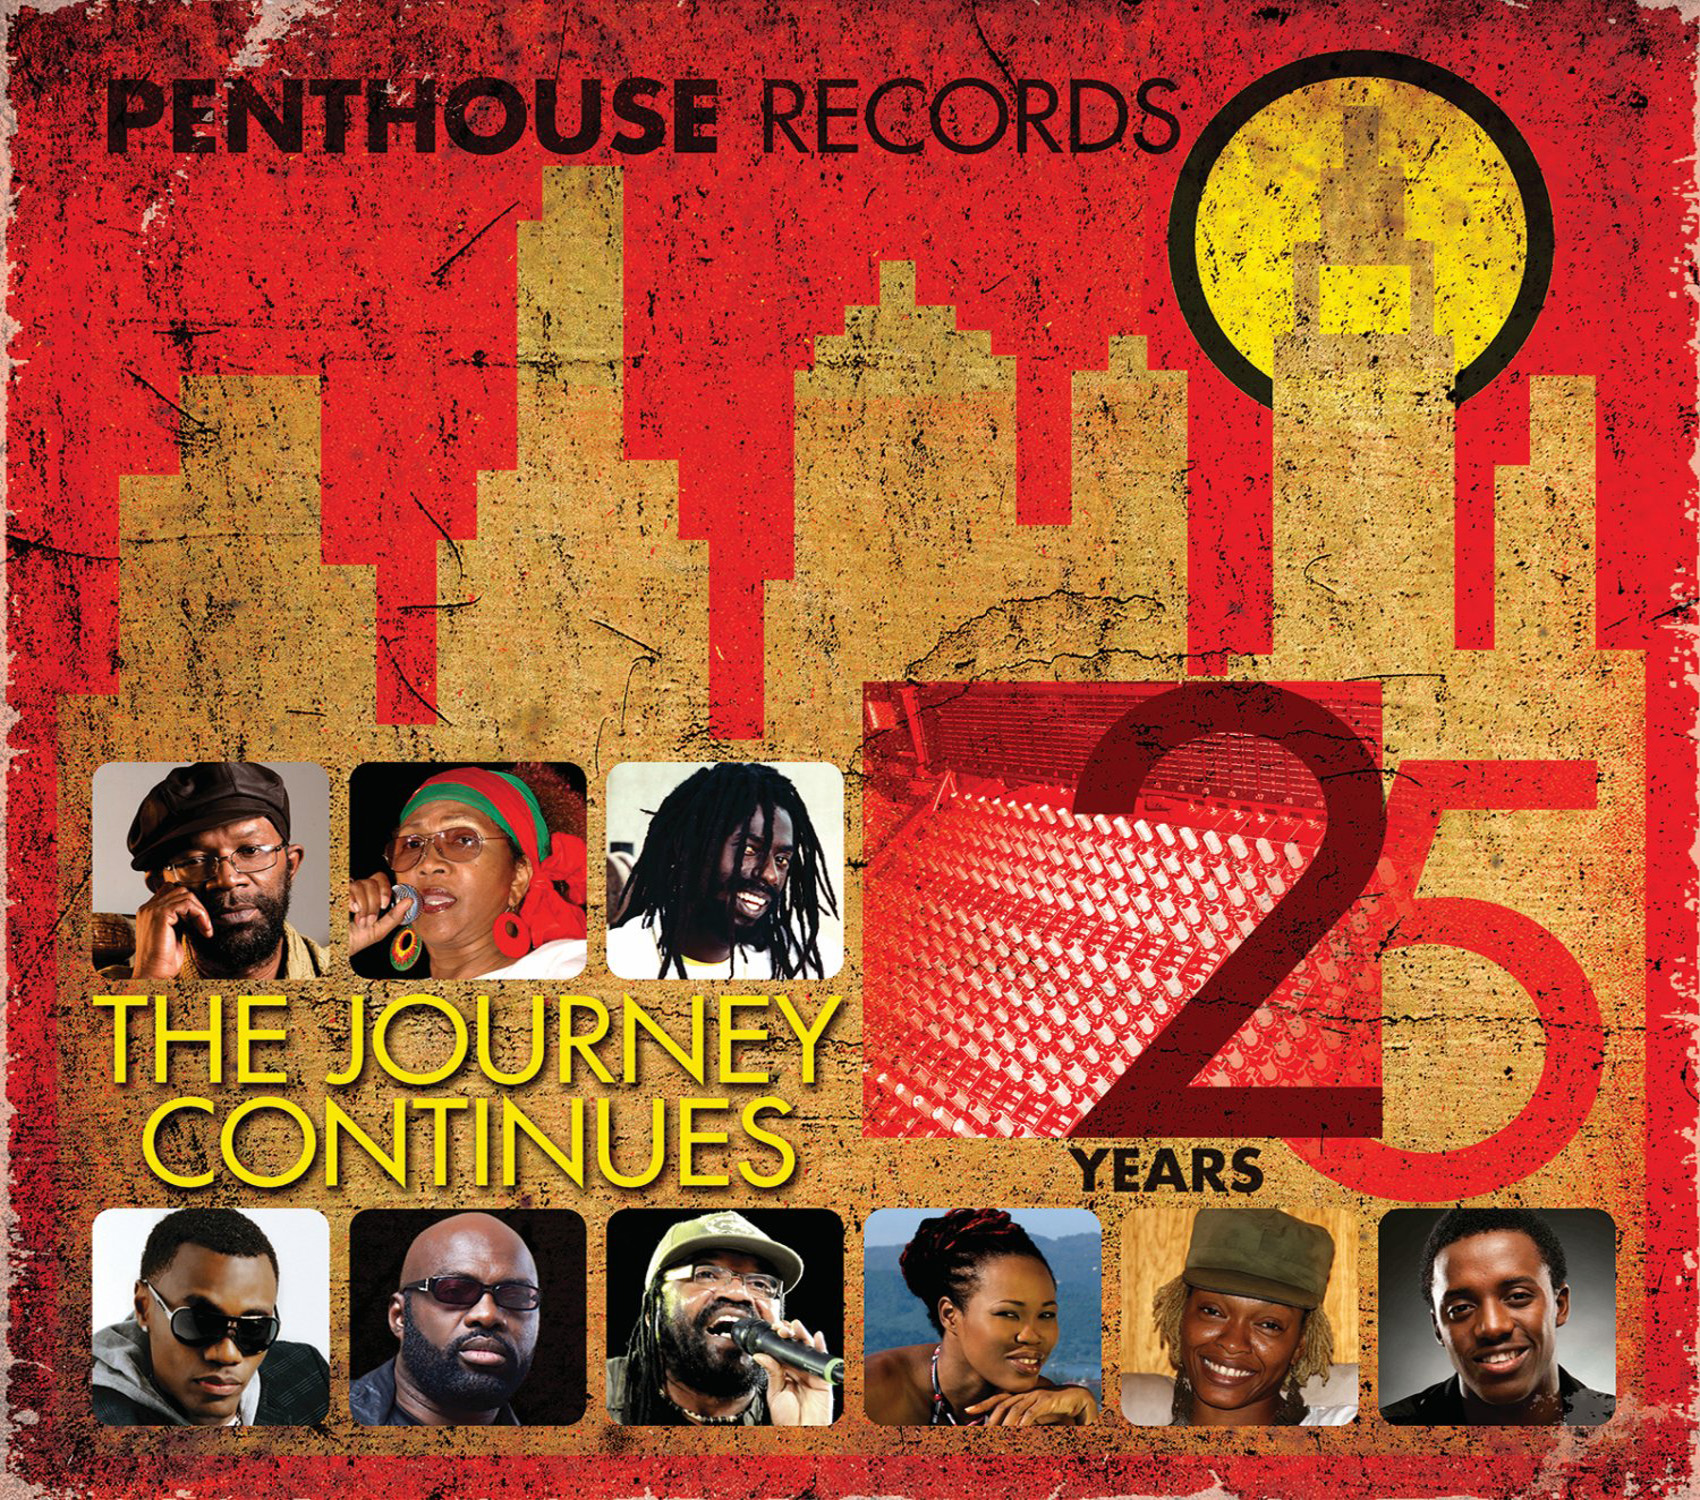 Penthouse Records: The Journey Continues